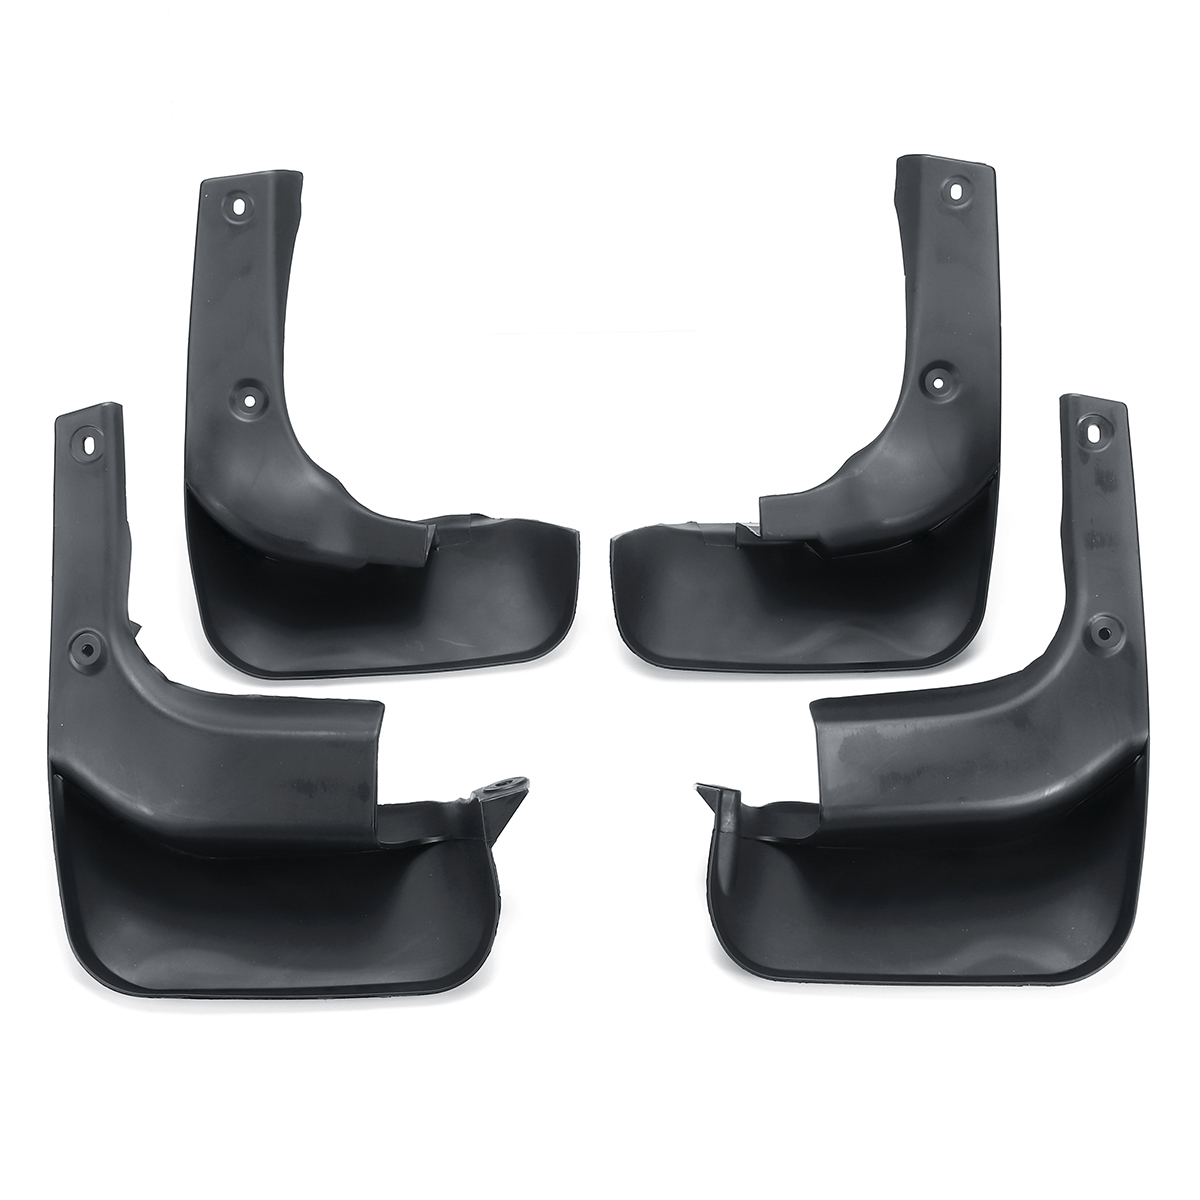 Image 3 - Car Mud Flaps For LEXUS RX RX270 RX300 RX350 RX450H 2010 2015 Splash Guards Mudflaps Mudguards Accessories-in Mudguards from Automobiles & Motorcycles